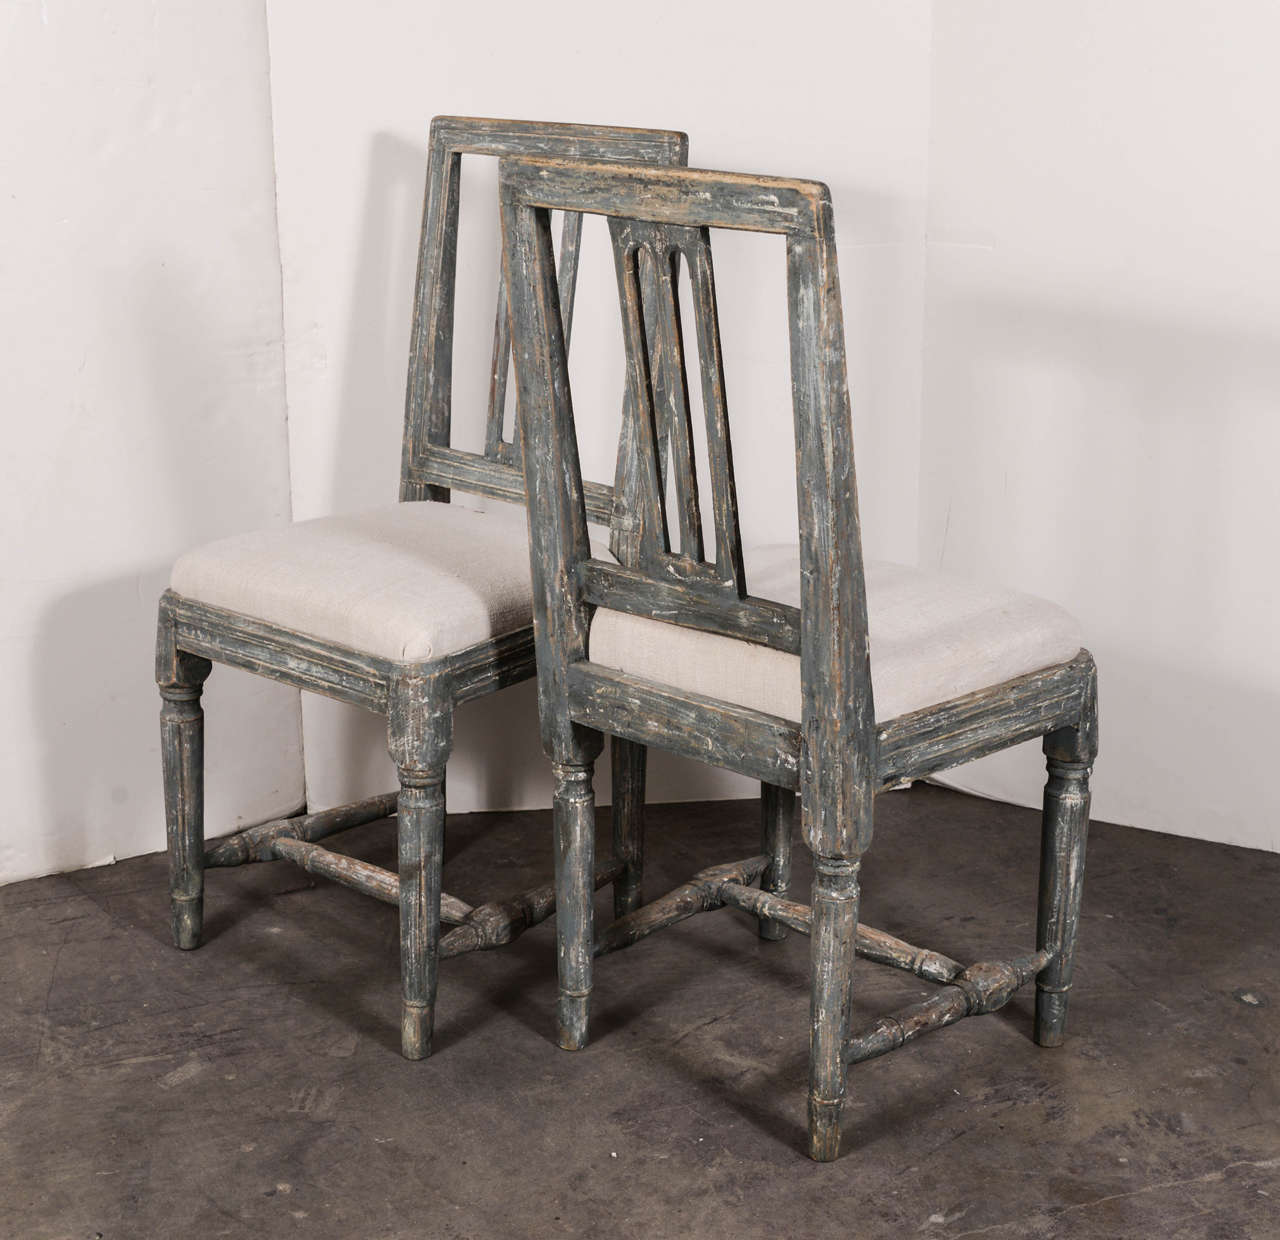 Swedish Gustavian Blue Painted Slat Back Dining Chairs from circa 1790 4